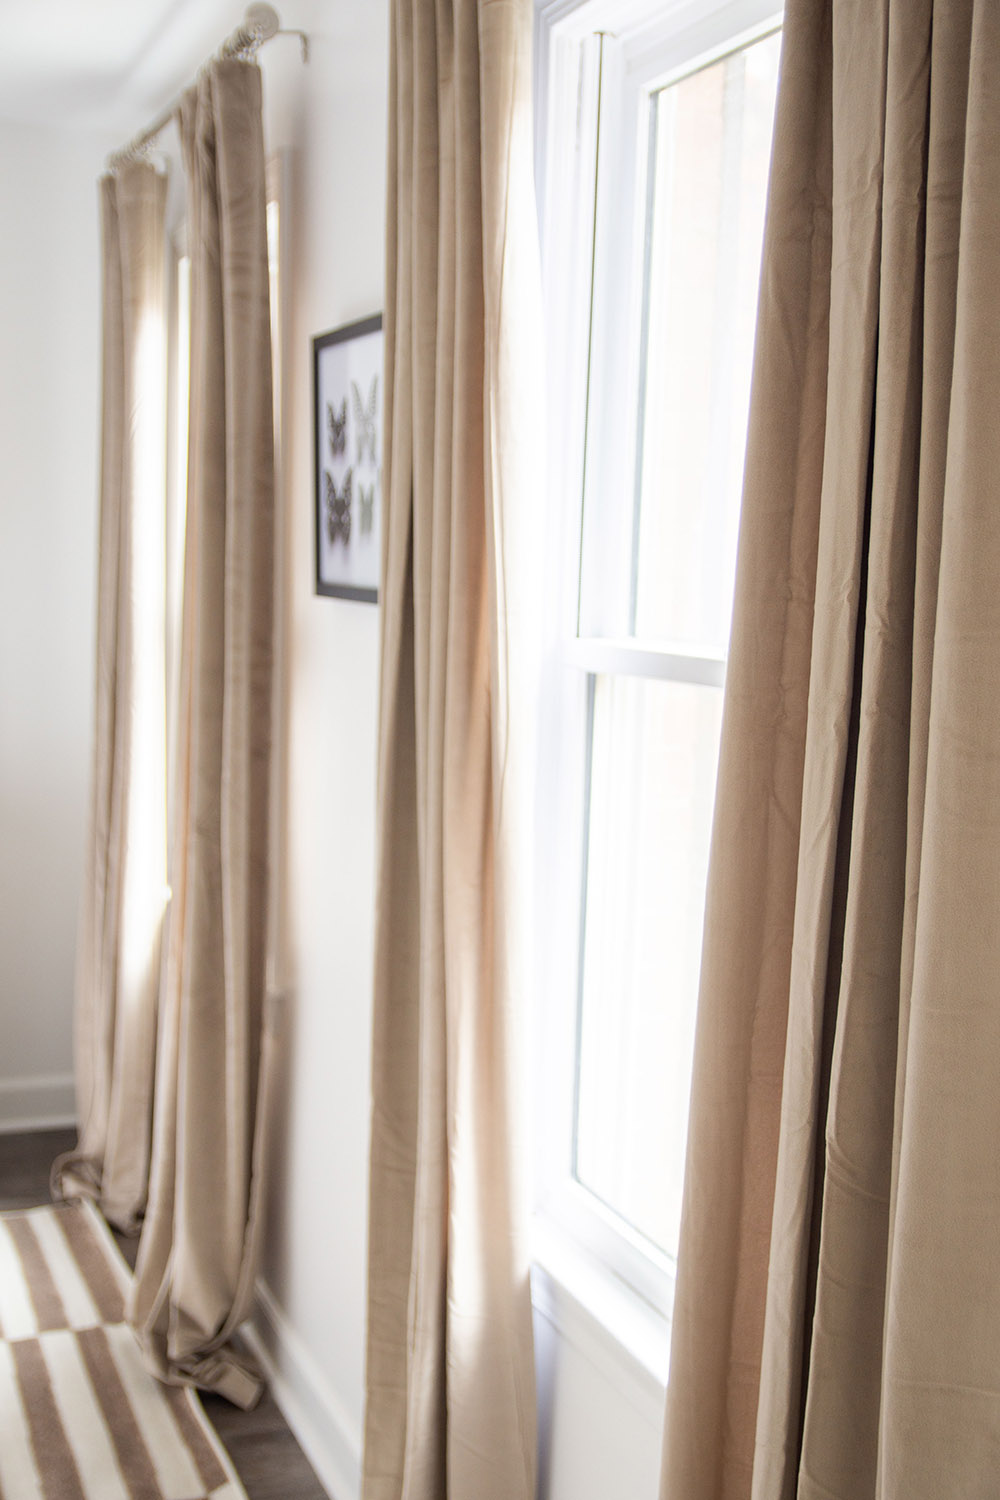 A white wall with neutral colored curtains and art.